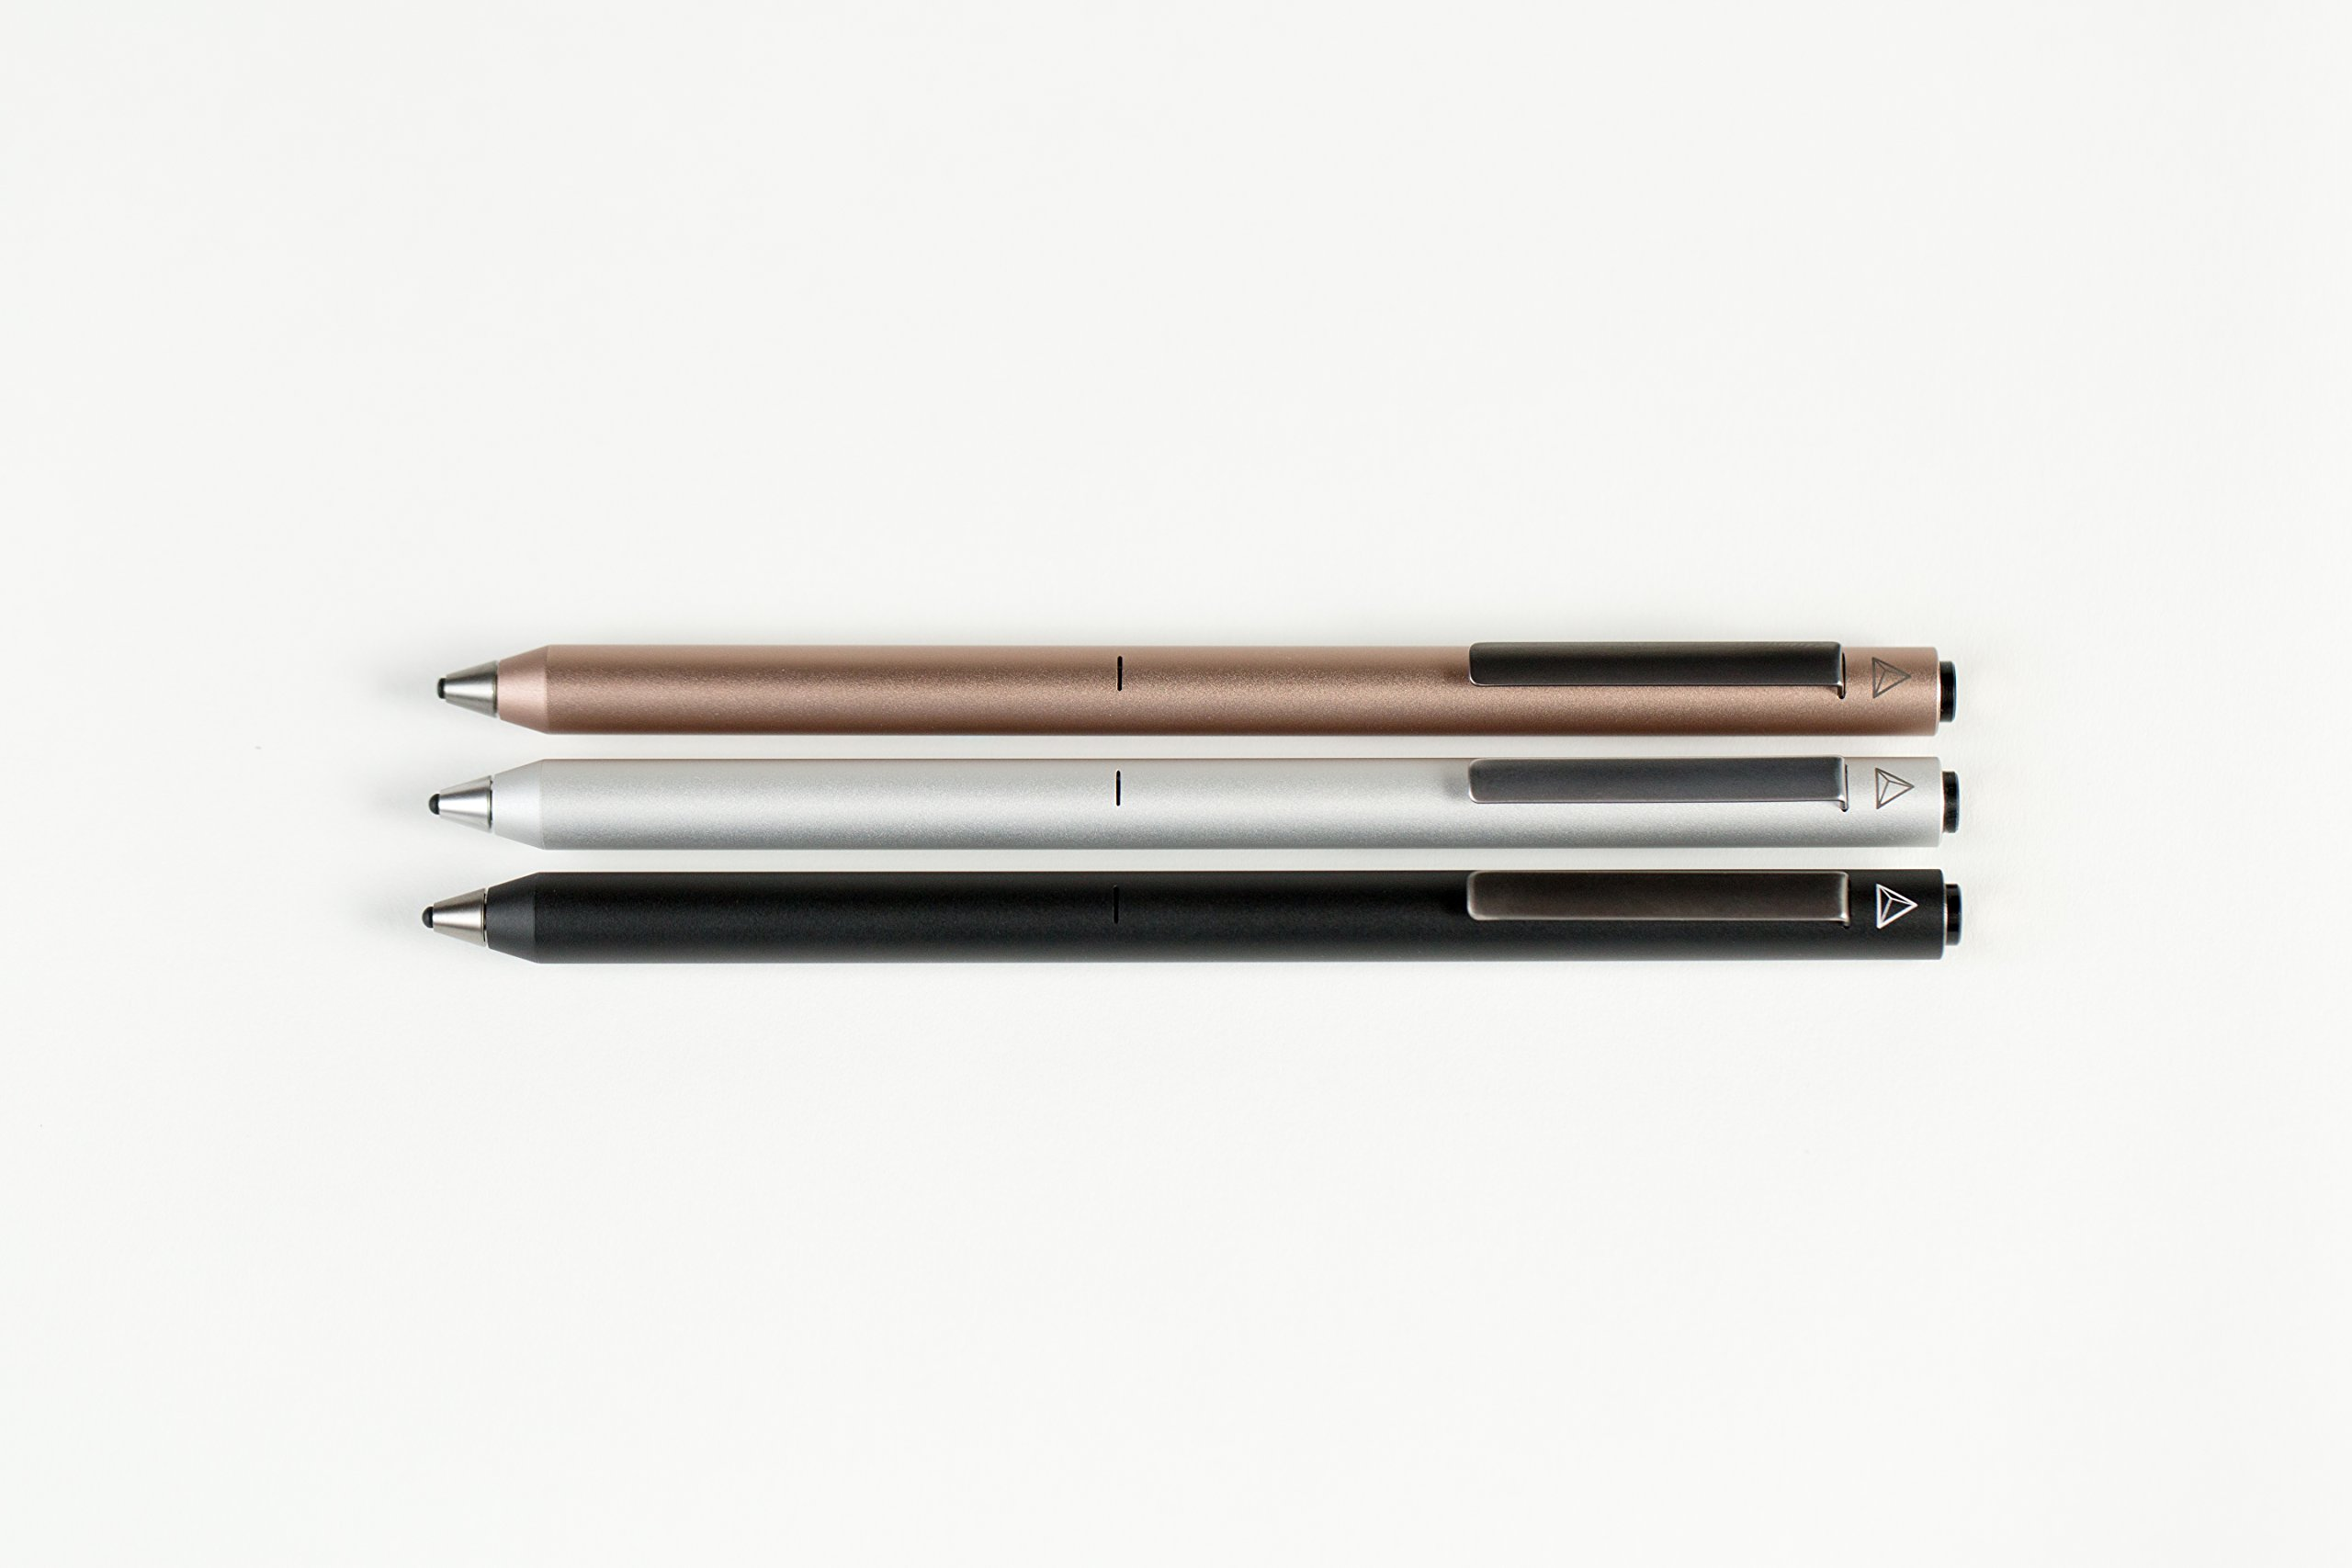 Adonit Dash 3 - Fine Point Precision Stylus for iPad, iPhone, Samsung, Android, and Most Touchscreens, Bronze (ADJD3BR)